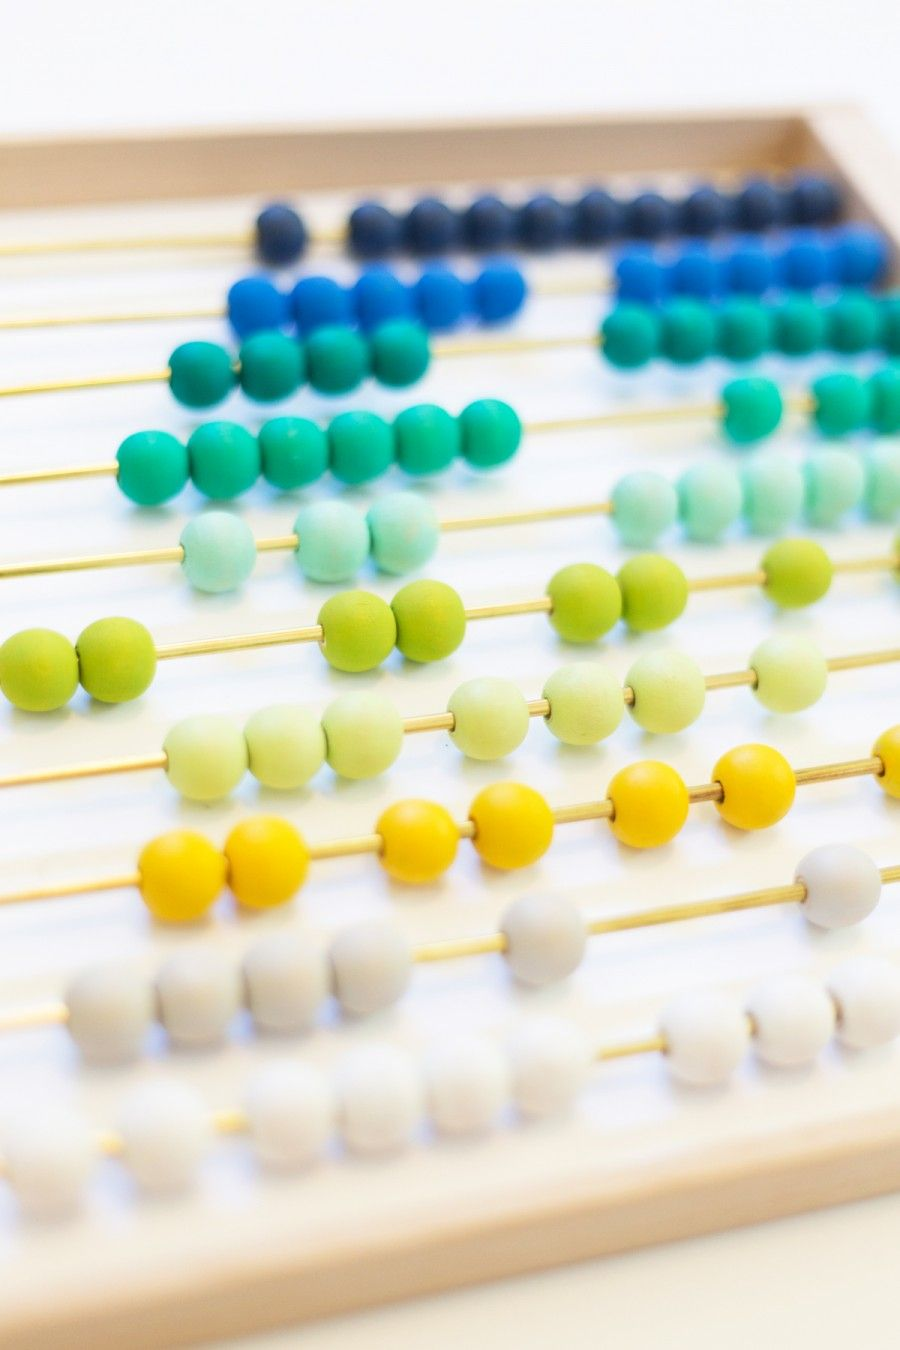 DIY Ombre Abacus | House Ideas | Pinterest | Diy ombre and House